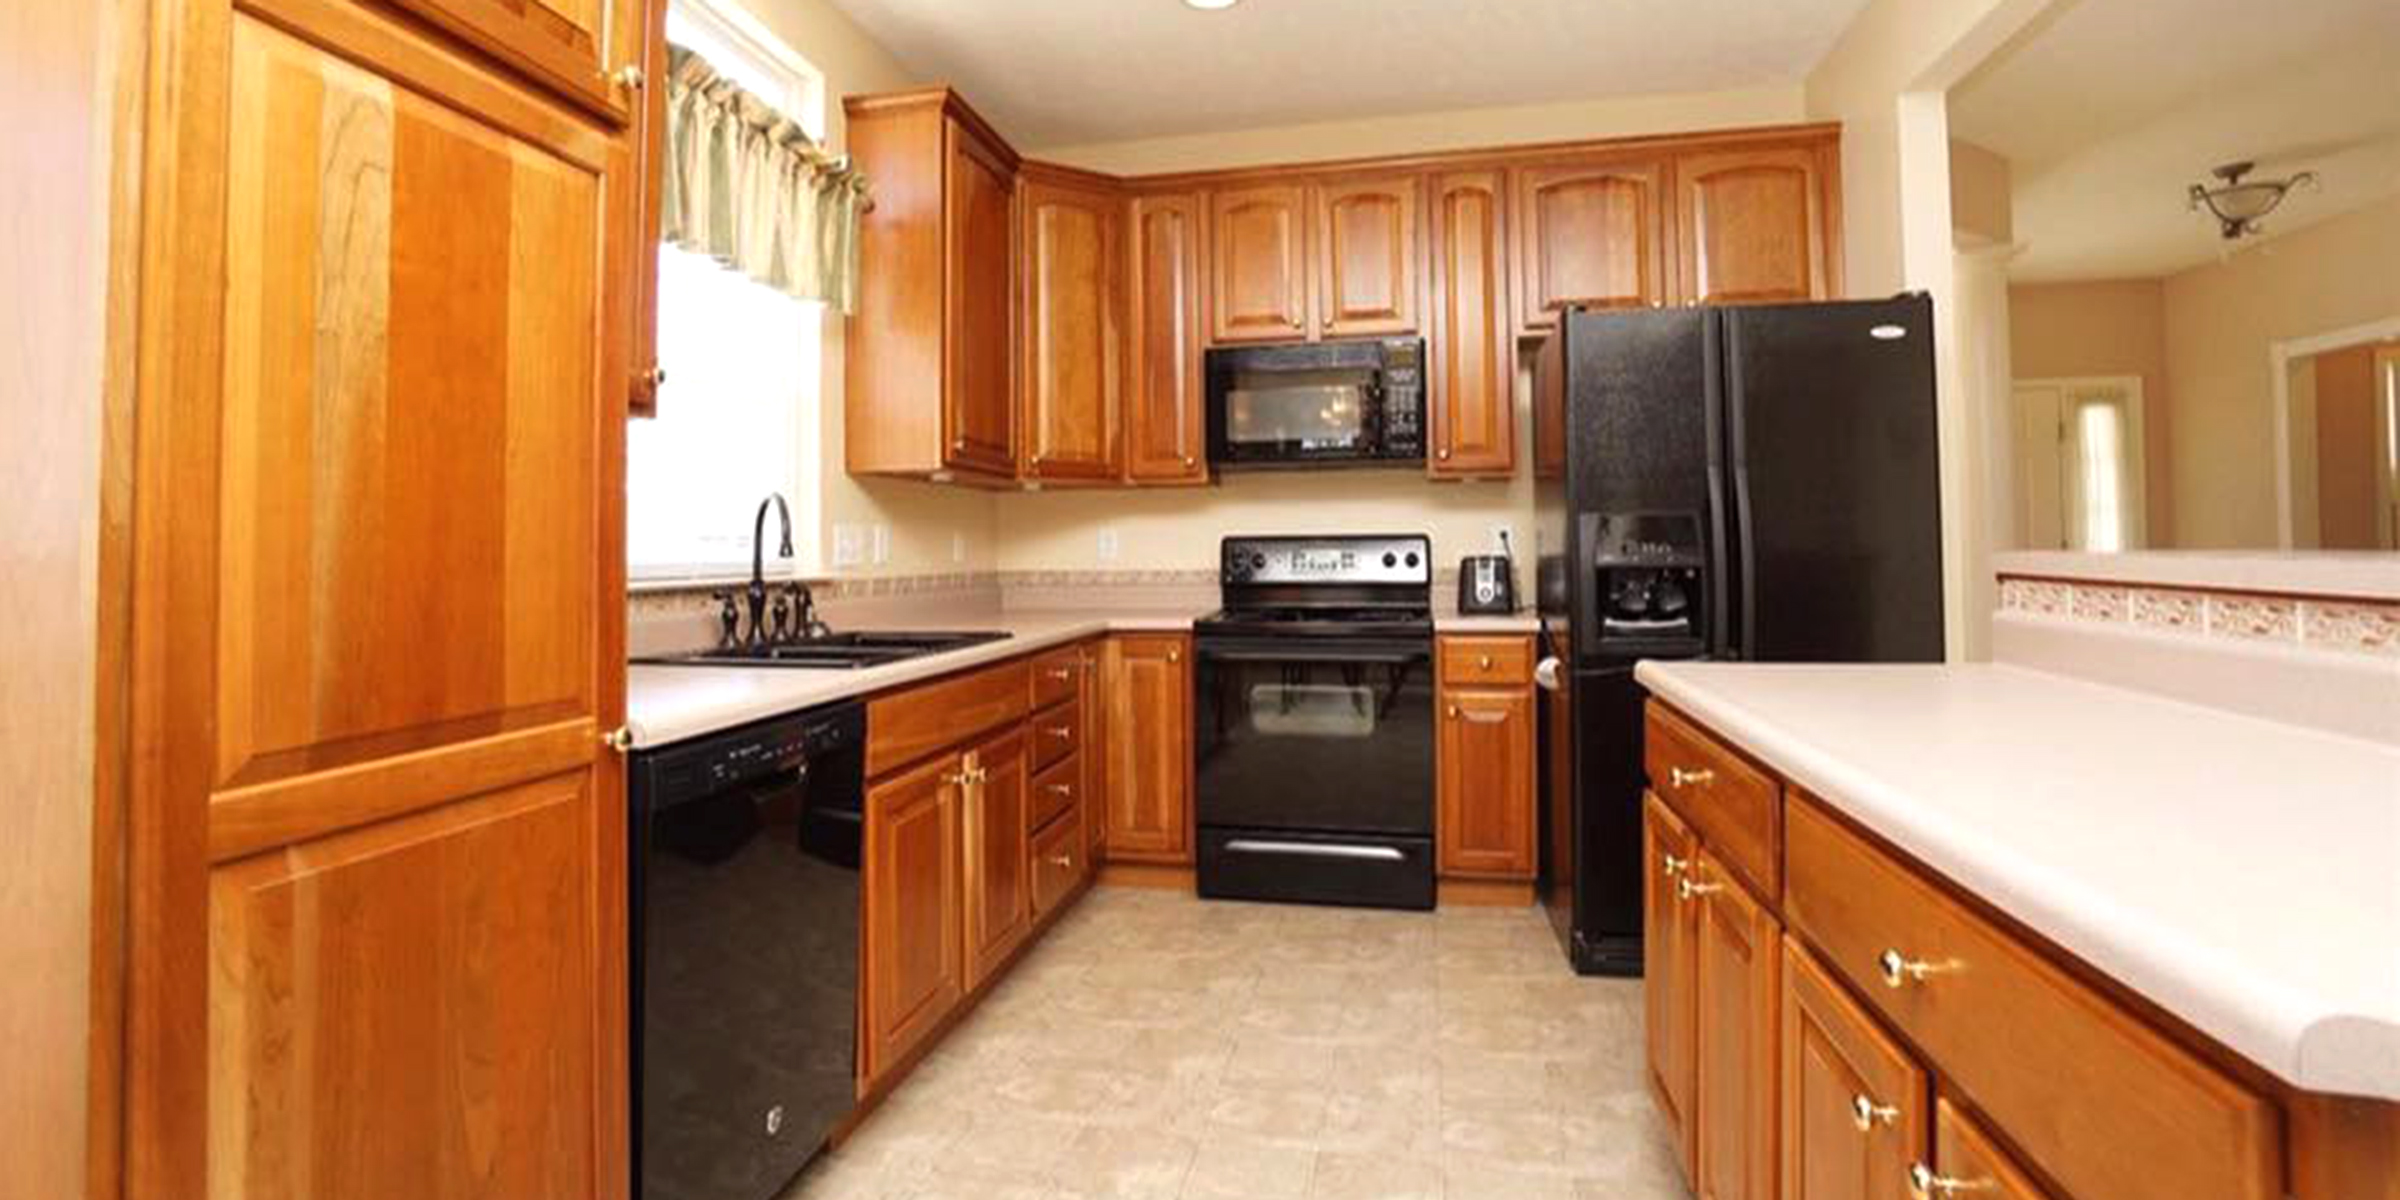 This kitchen is unrecognizable after a makeover — for only $95!